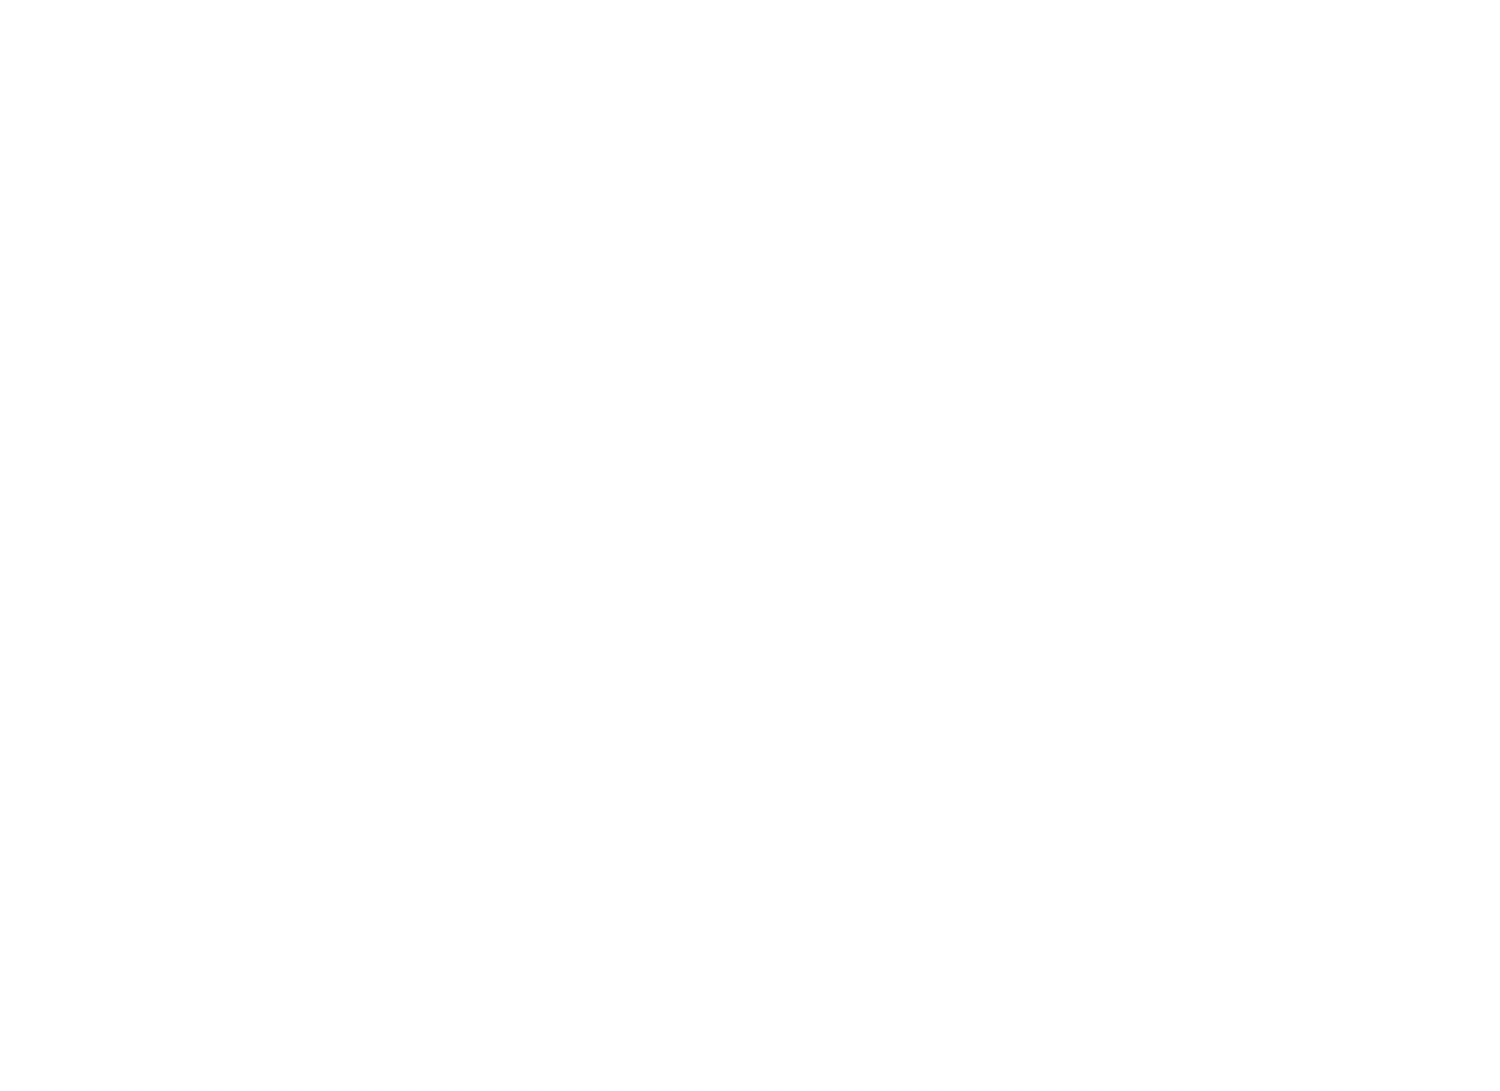 Artflower